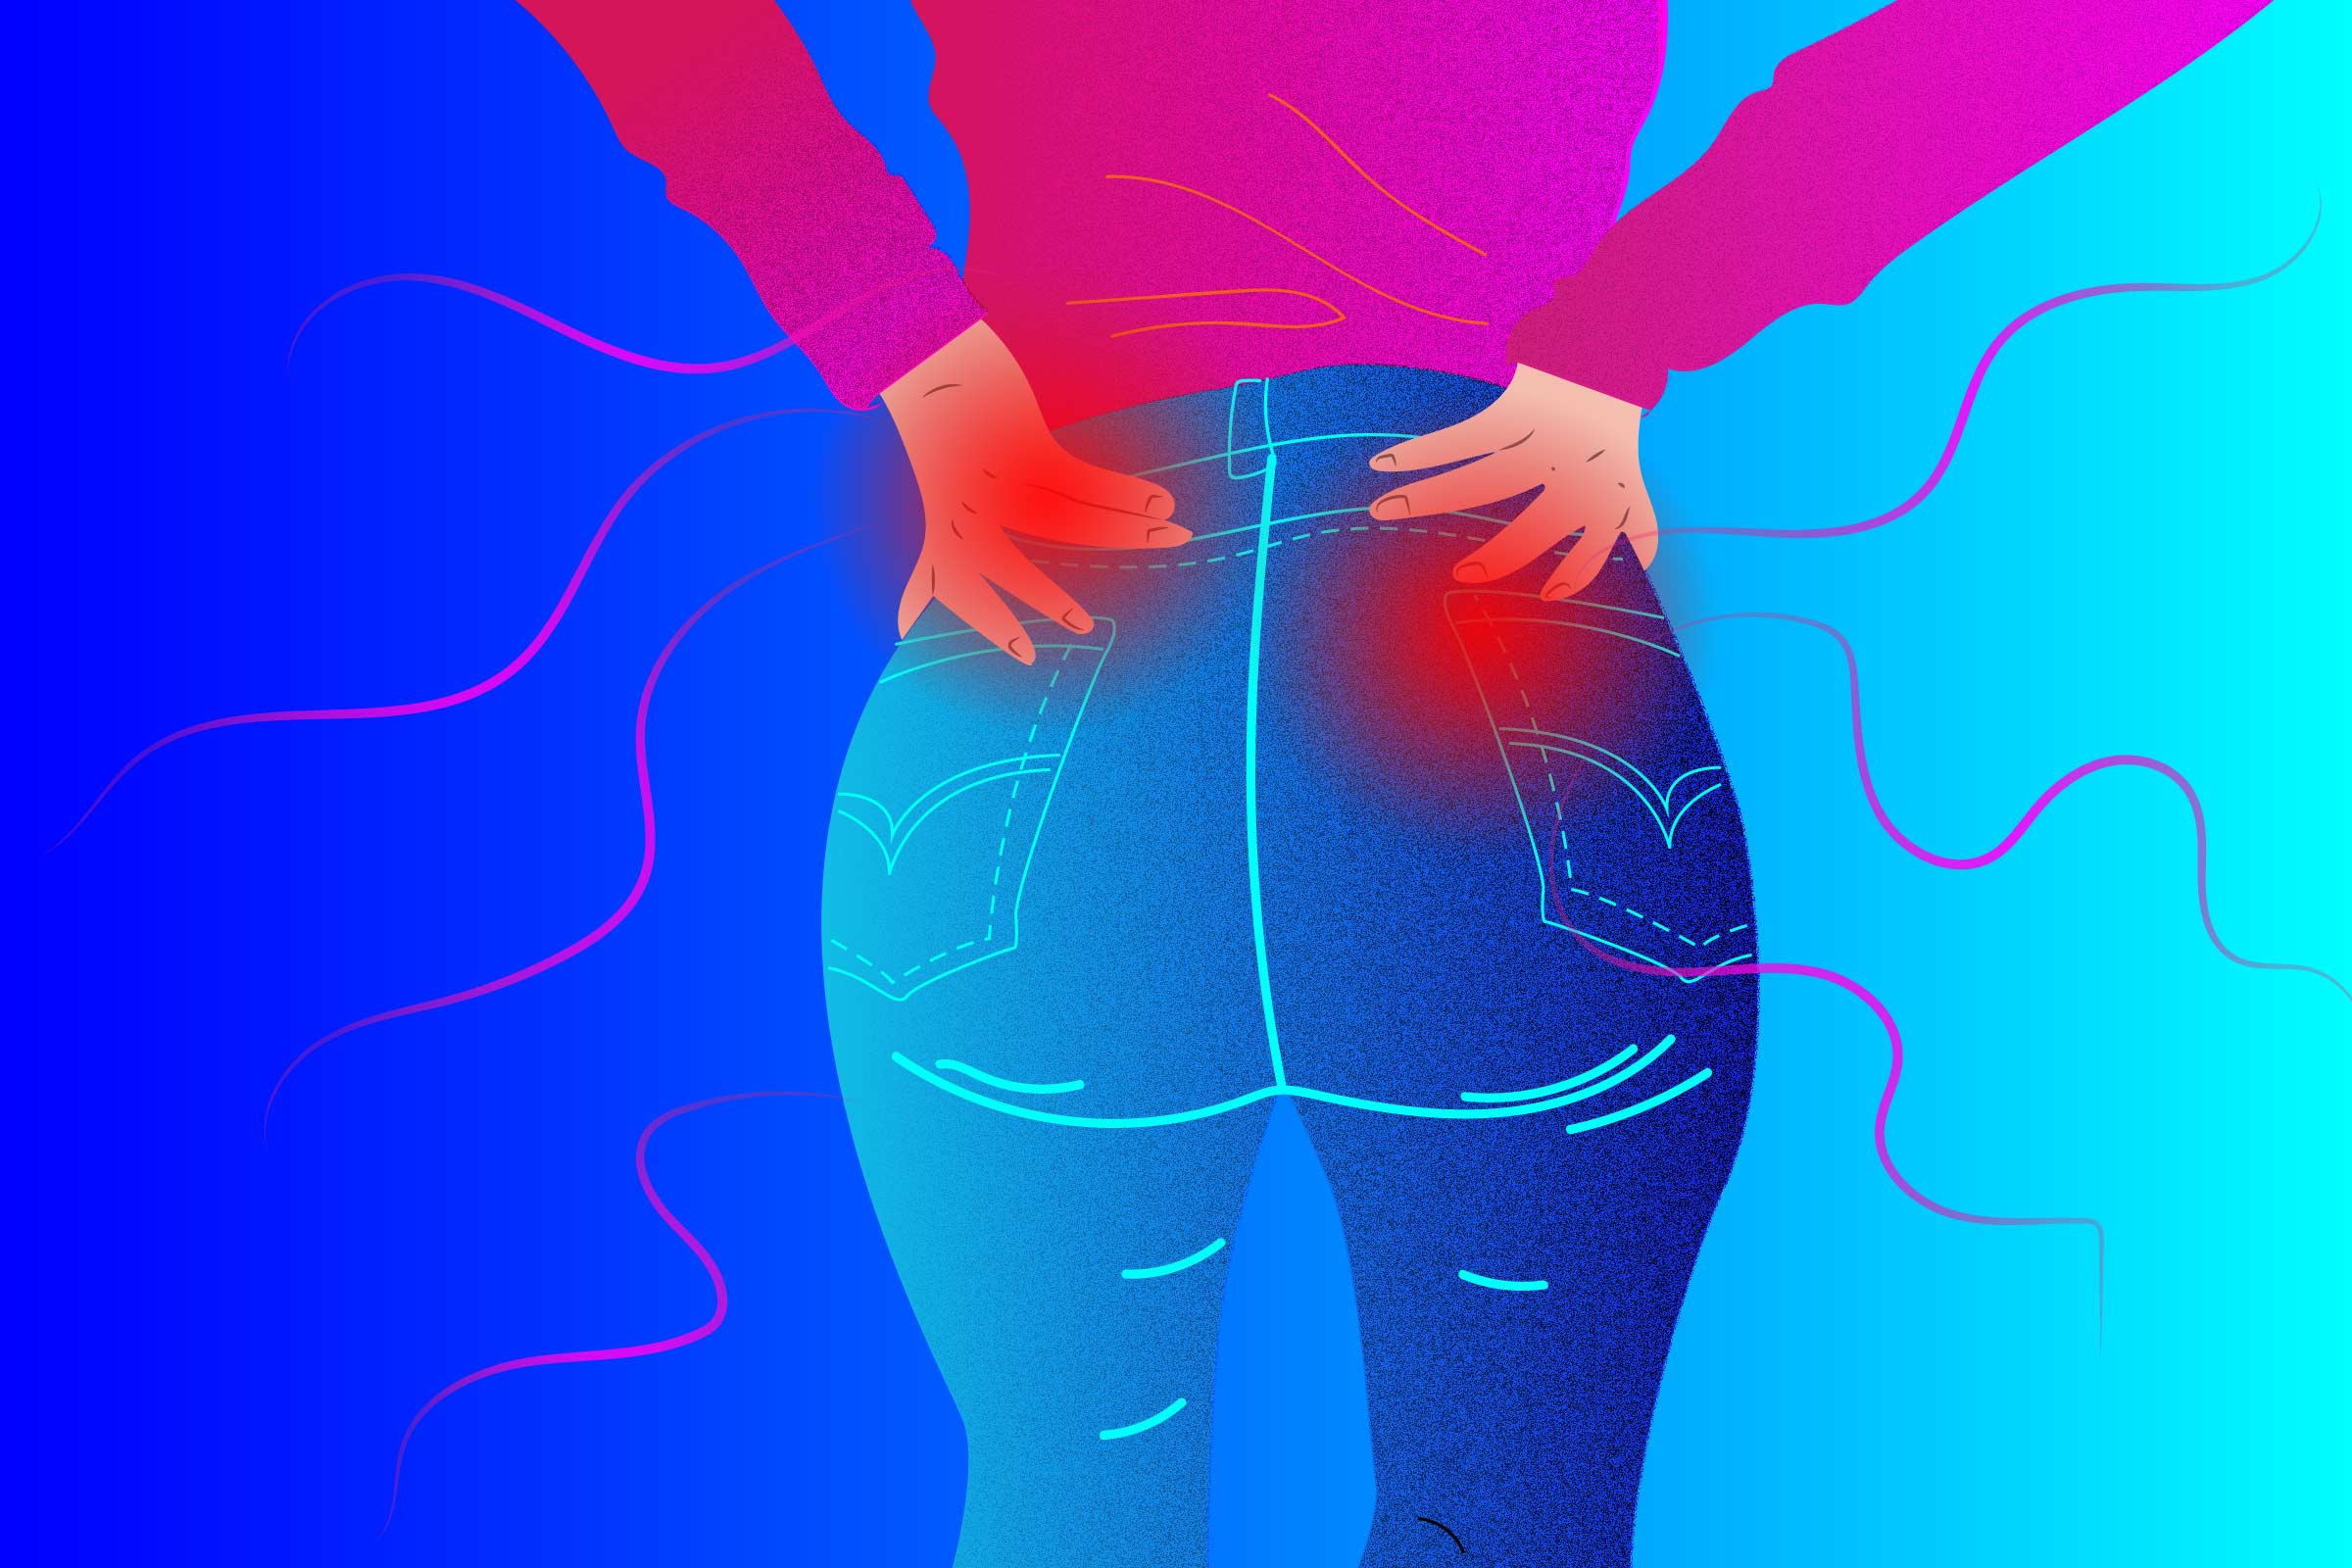 Butt Pain and Arthritis: Symptoms, Causes, and Treatments